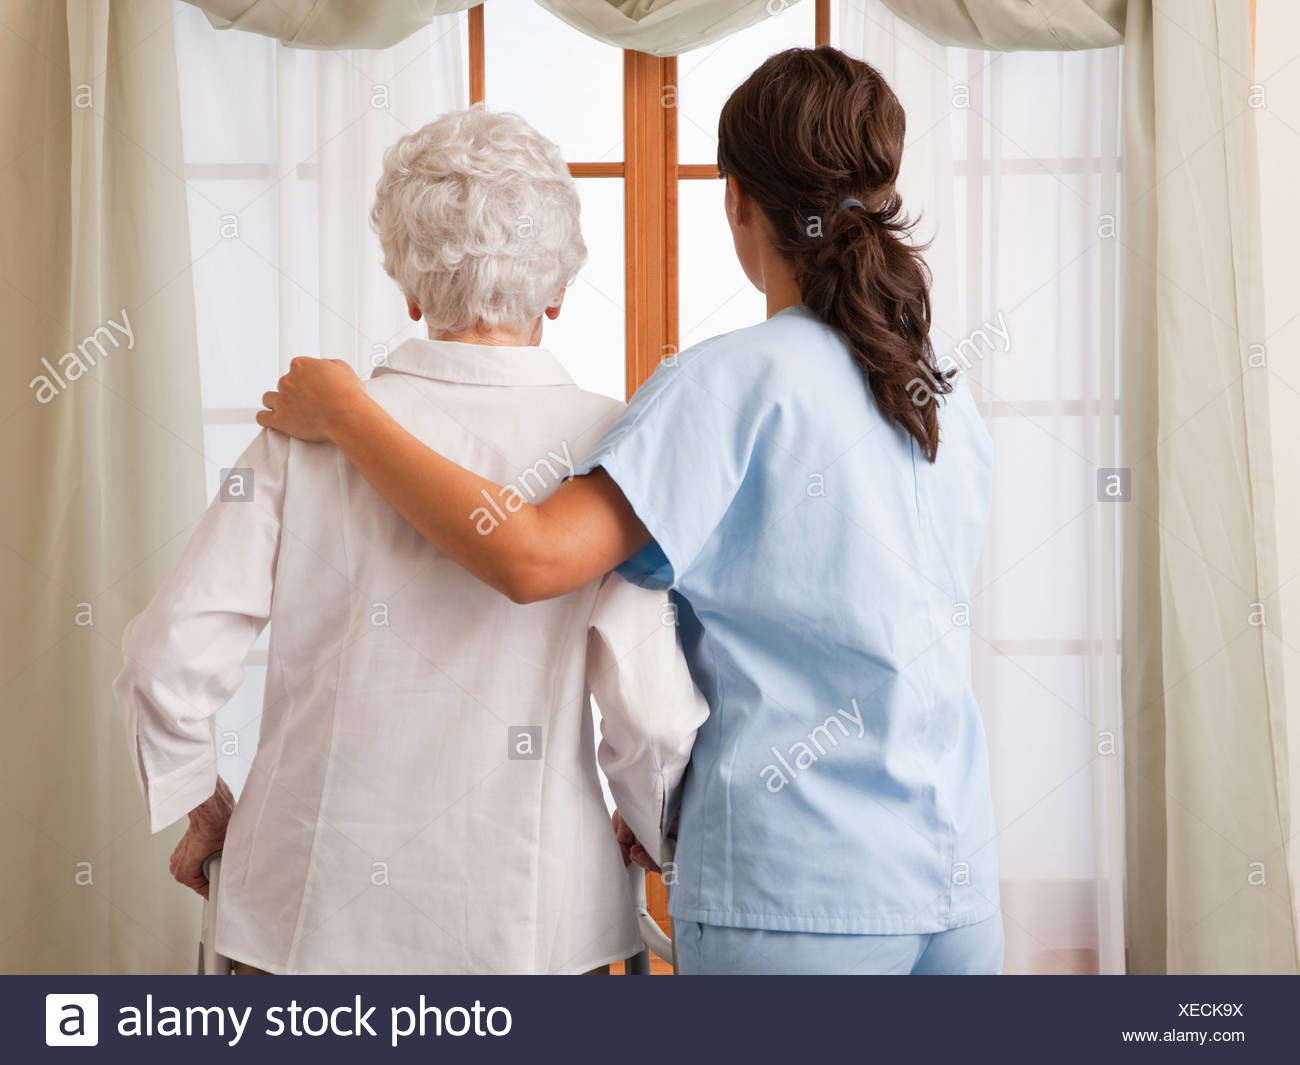 USA, Illinois, Metamora, Rear view of female nurse and senior woman looking through window - Stock Image